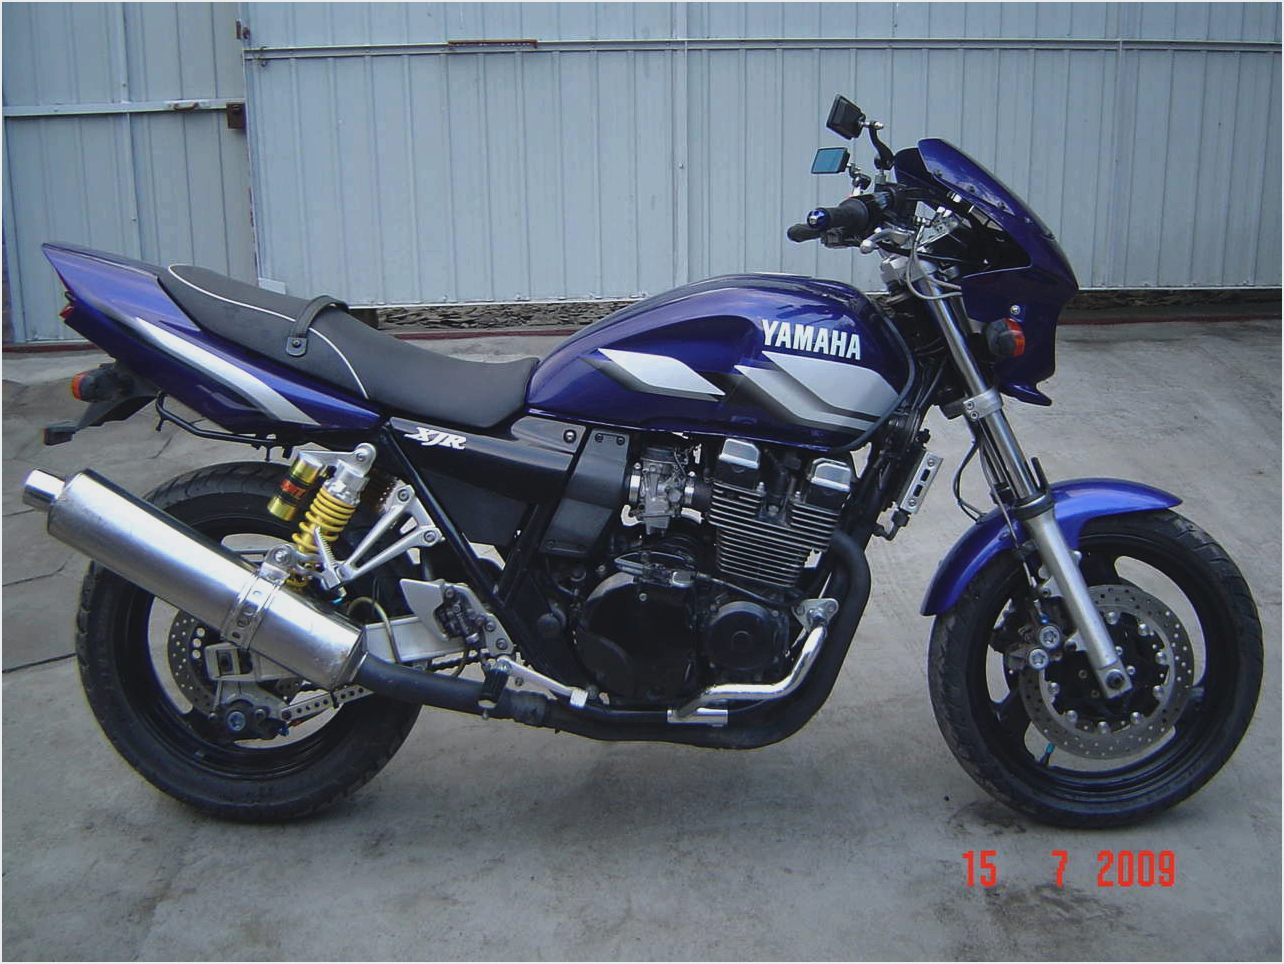 Yamaha XJR 400 R 2005 images #91273